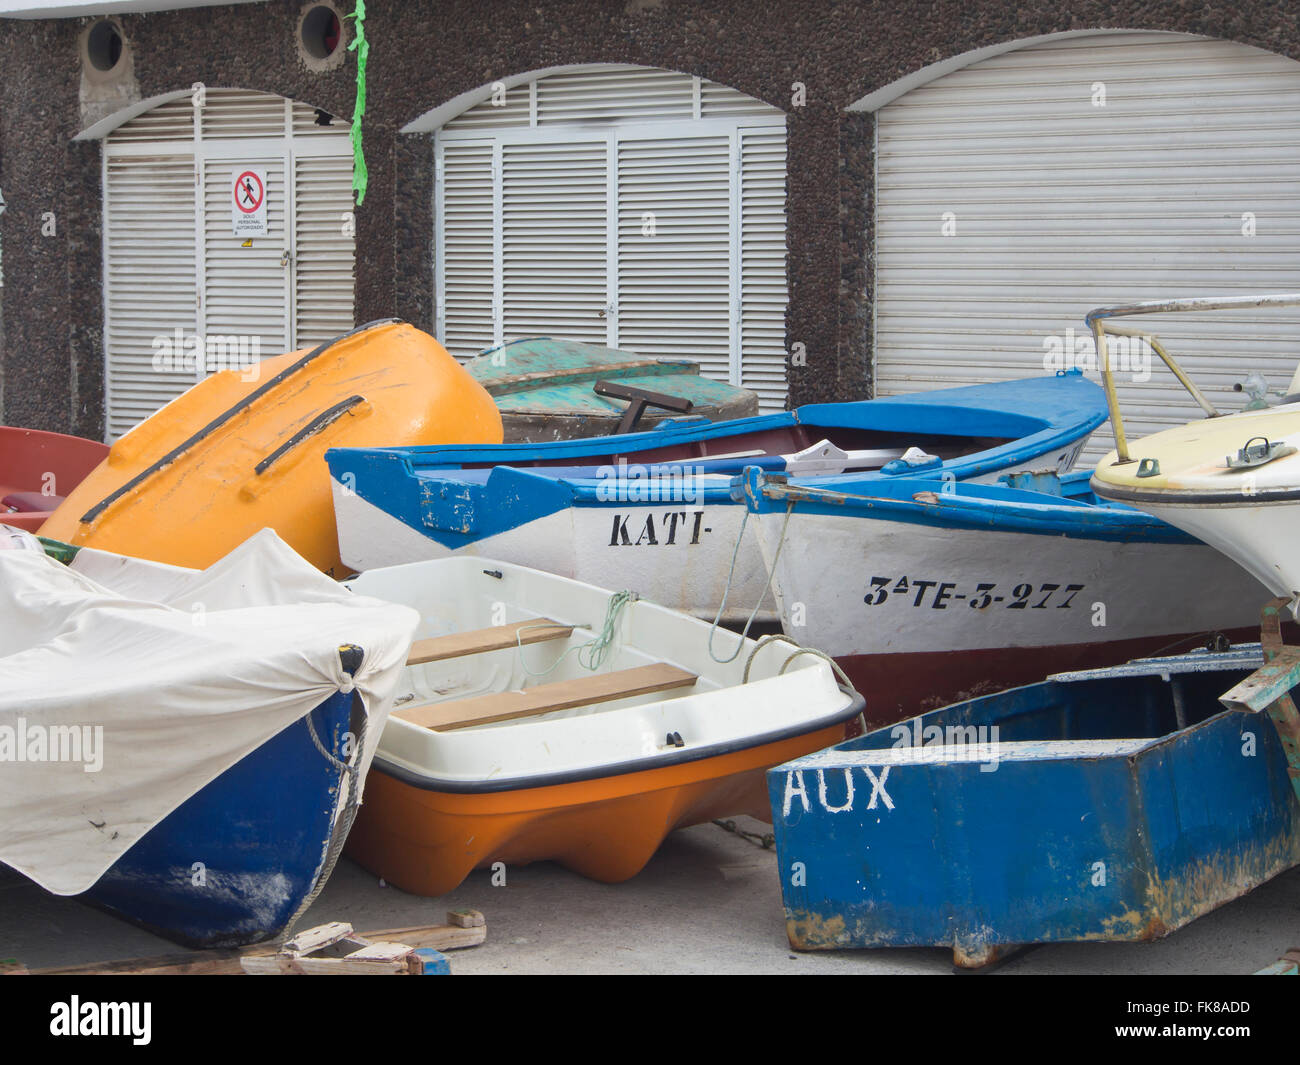 Cluster of traditional small fishing boats in front of a row of boathouse doors, Alcala Tenerife Canary Islands - Stock Image